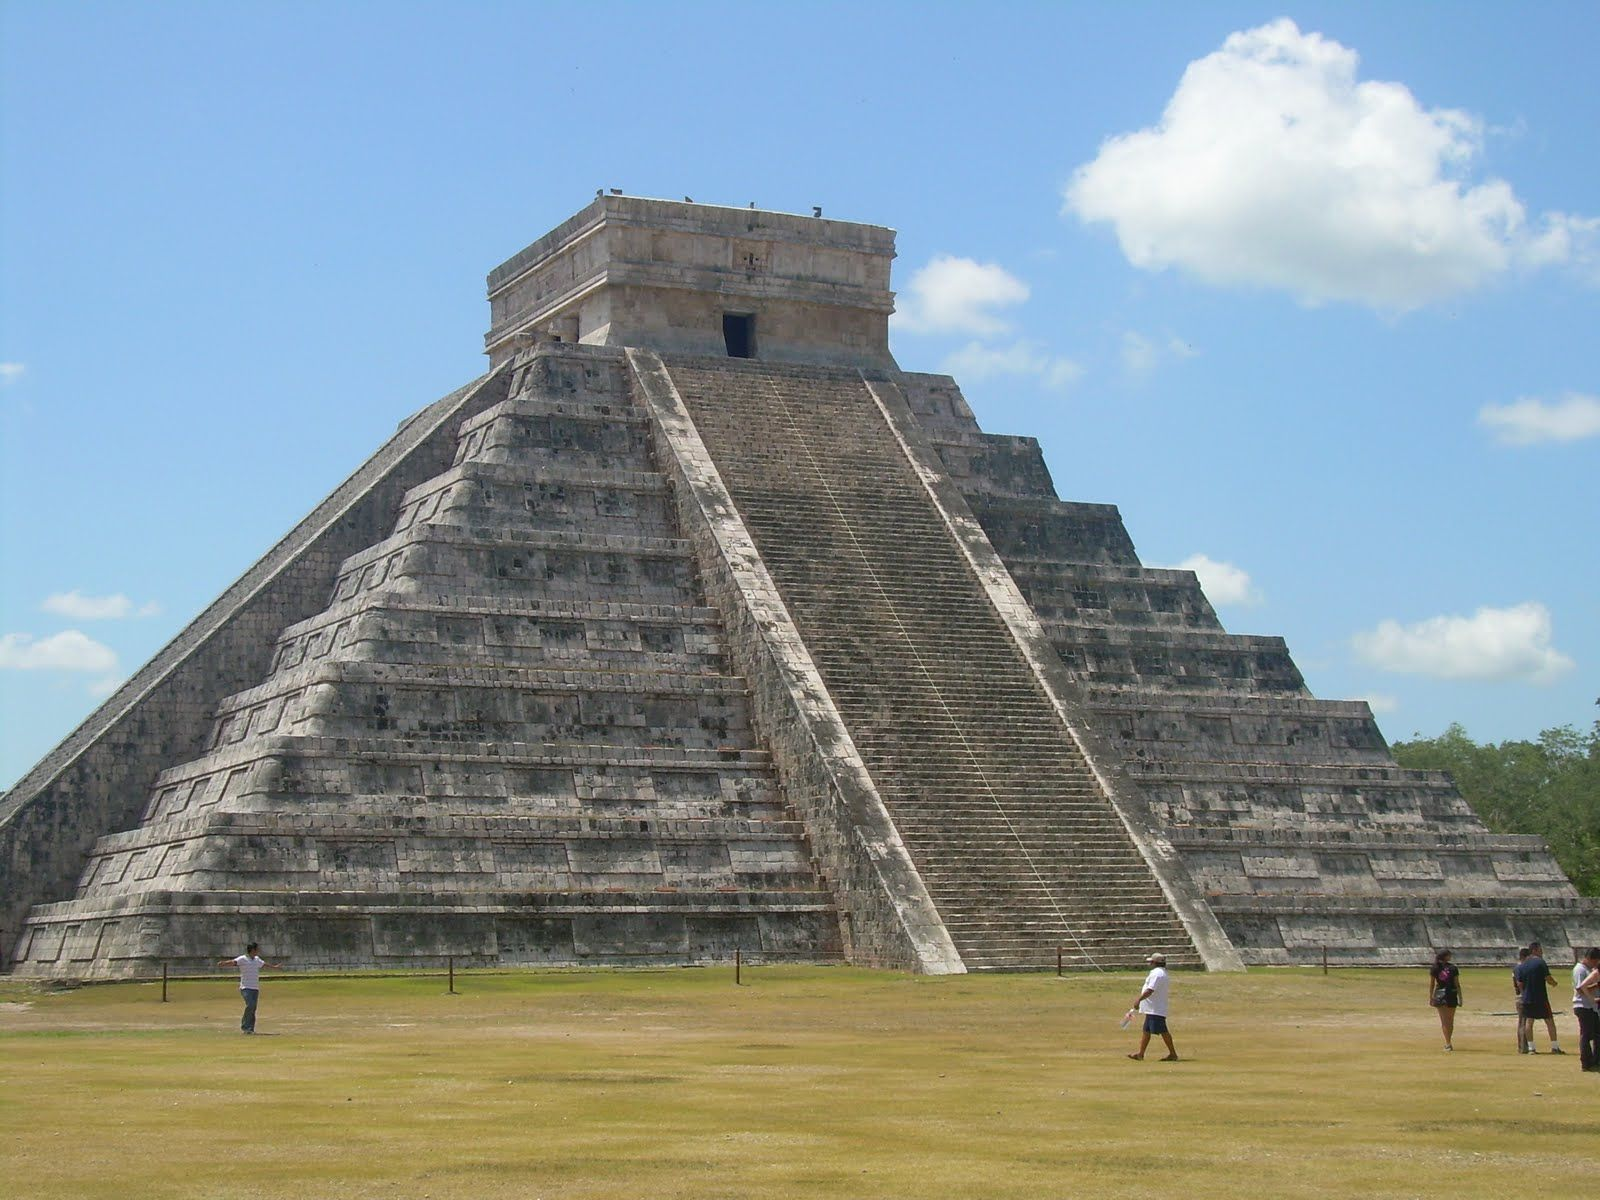 Aztec Pyramids | Chichen Itza built by the Maya ...